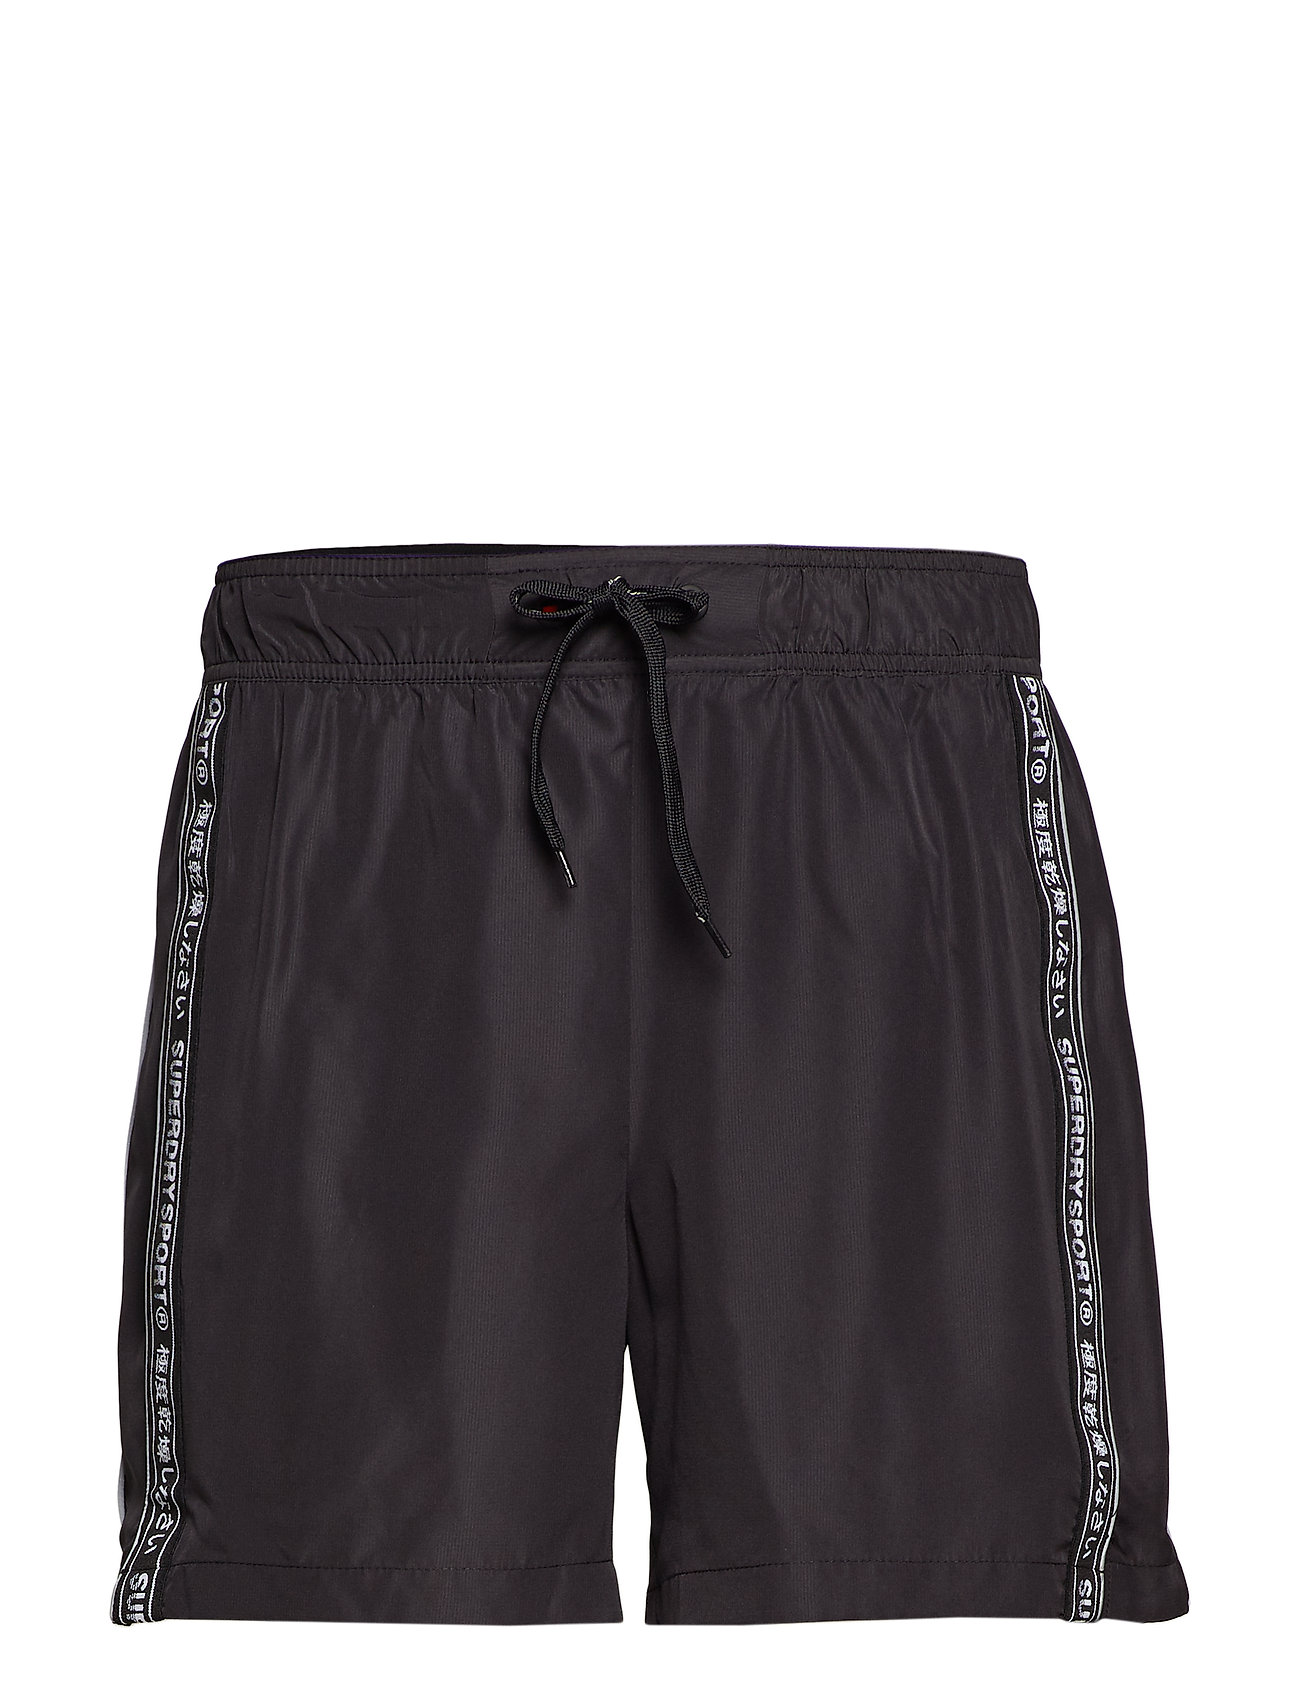 Superdry ACTIVE LOGO TAPED SHORT - BLACK